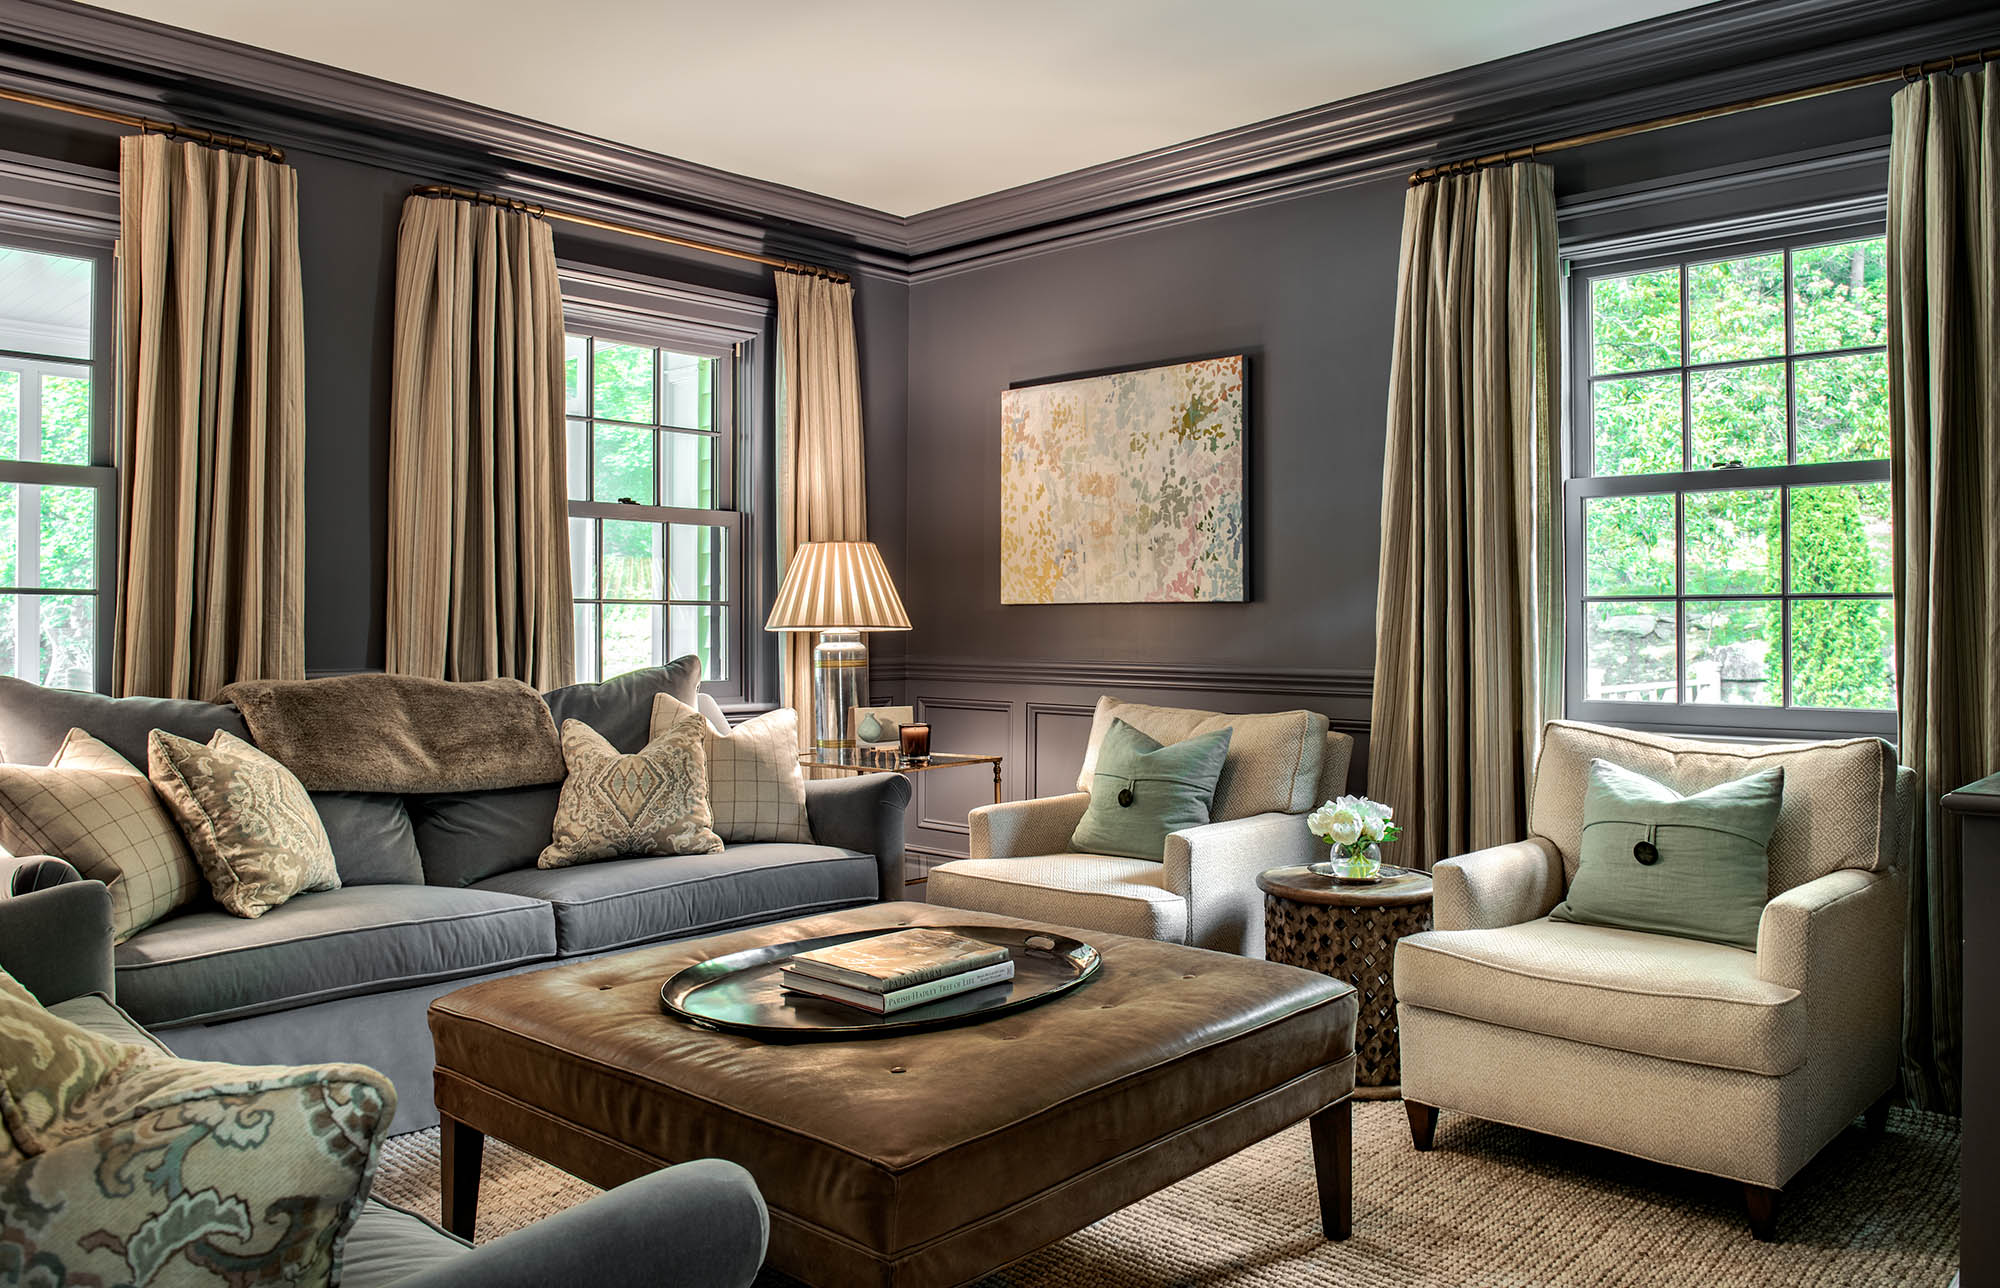 """Benjamin Moore's Montpelier (AF-555)  """"This room does not get much sunlight, so we decided to embrace the lack of light and create a cozy and intimate library and television room for our clients. The blue gray paint color, which is used on the wainscot, walls, and trim, coordinates with the velvet upholstery on the sofa and helps to create a comfortable yet elegant space. It is a perfect room for relaxing in with a glass of wine, a good book, or a favorite movie after a long week!""""  Elizabeth Brush Saypol & Elise Morrissey, of Morrissey Saypol Interiors"""